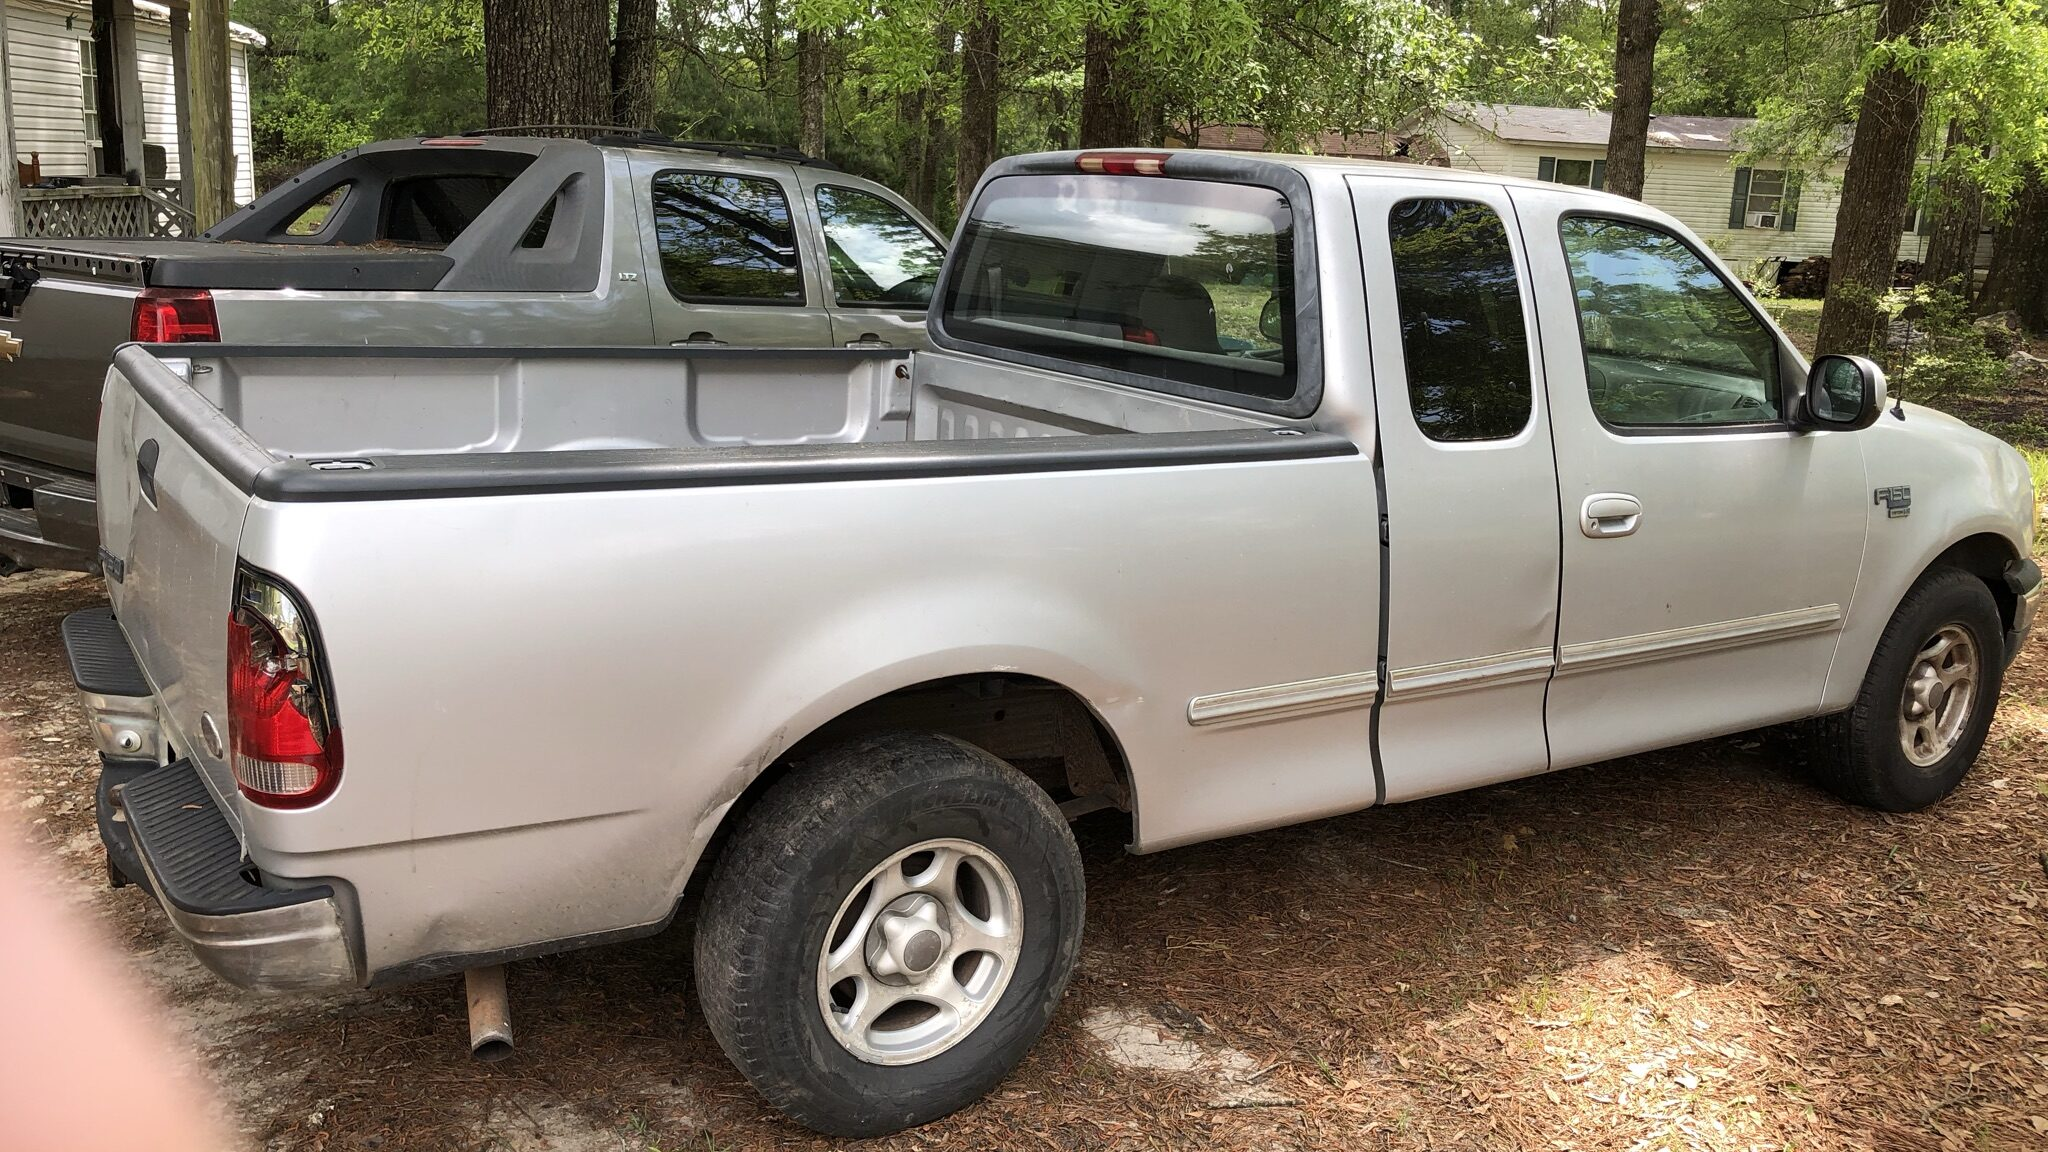 My Ford truck